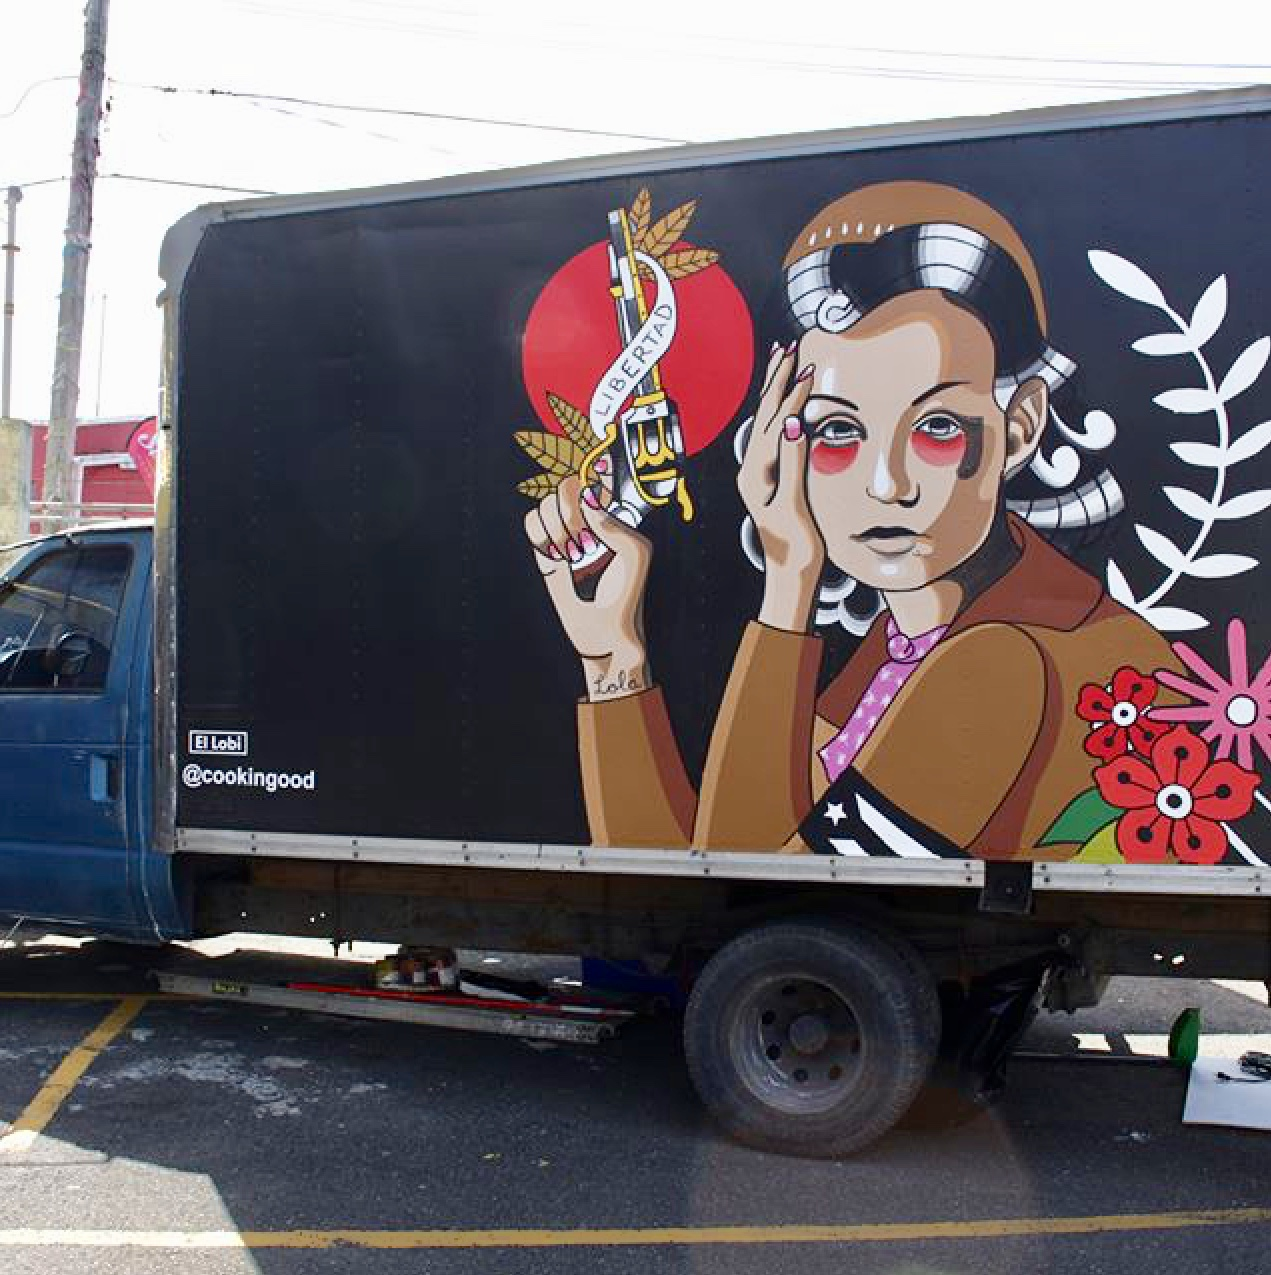 Homenaje a Lolita, large scale painting over truck, 2018. Presented for the Art Truck Expo 2018 curated by Santurce es Ley. Courtesy of the artist.